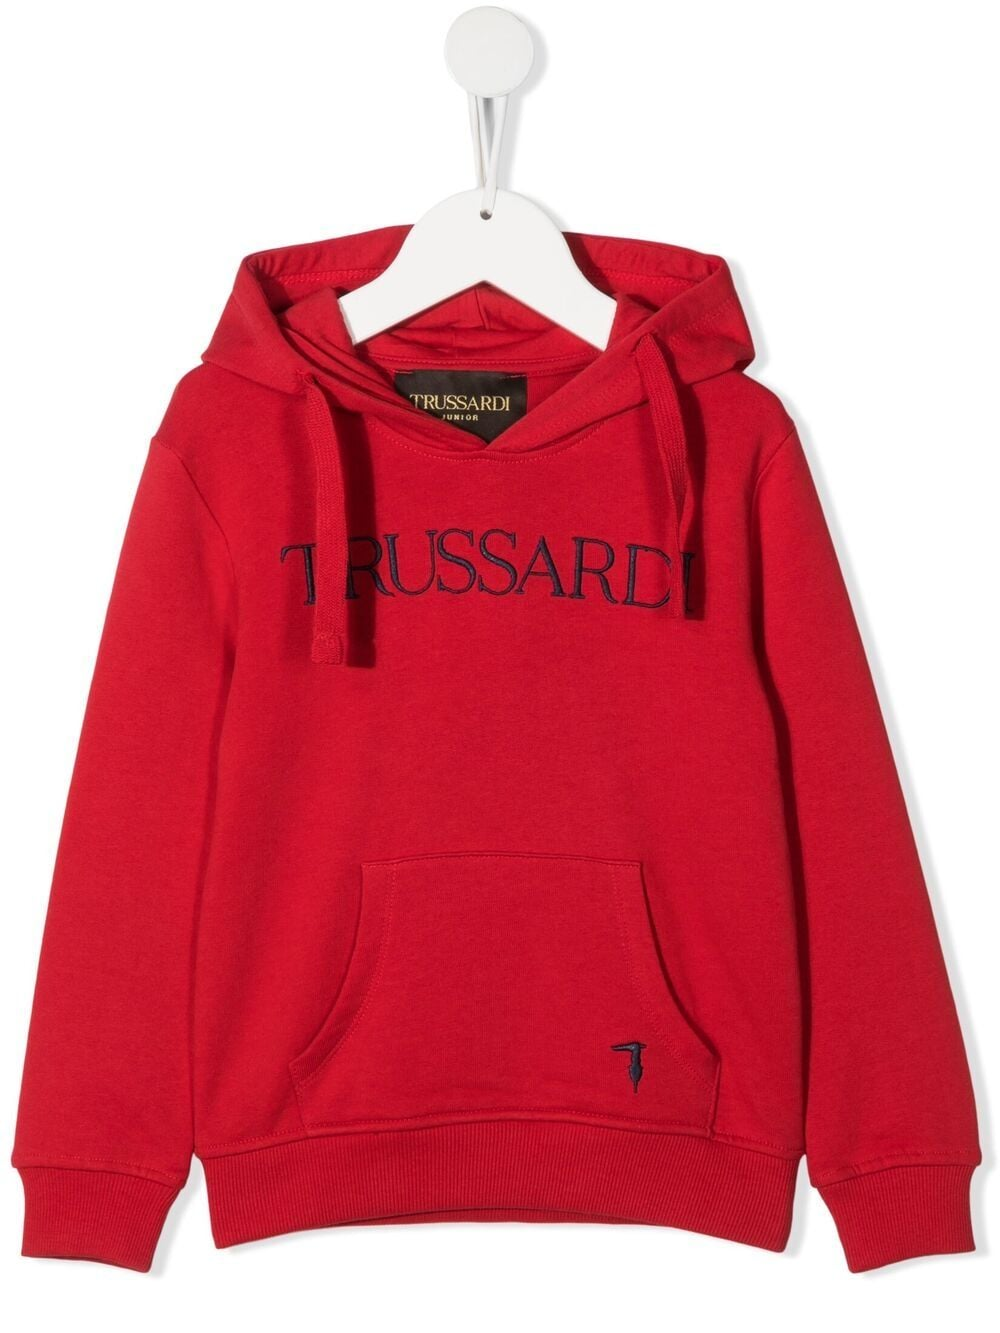 Trussardi junior | Sweatshirt | TBP21064FEW0480